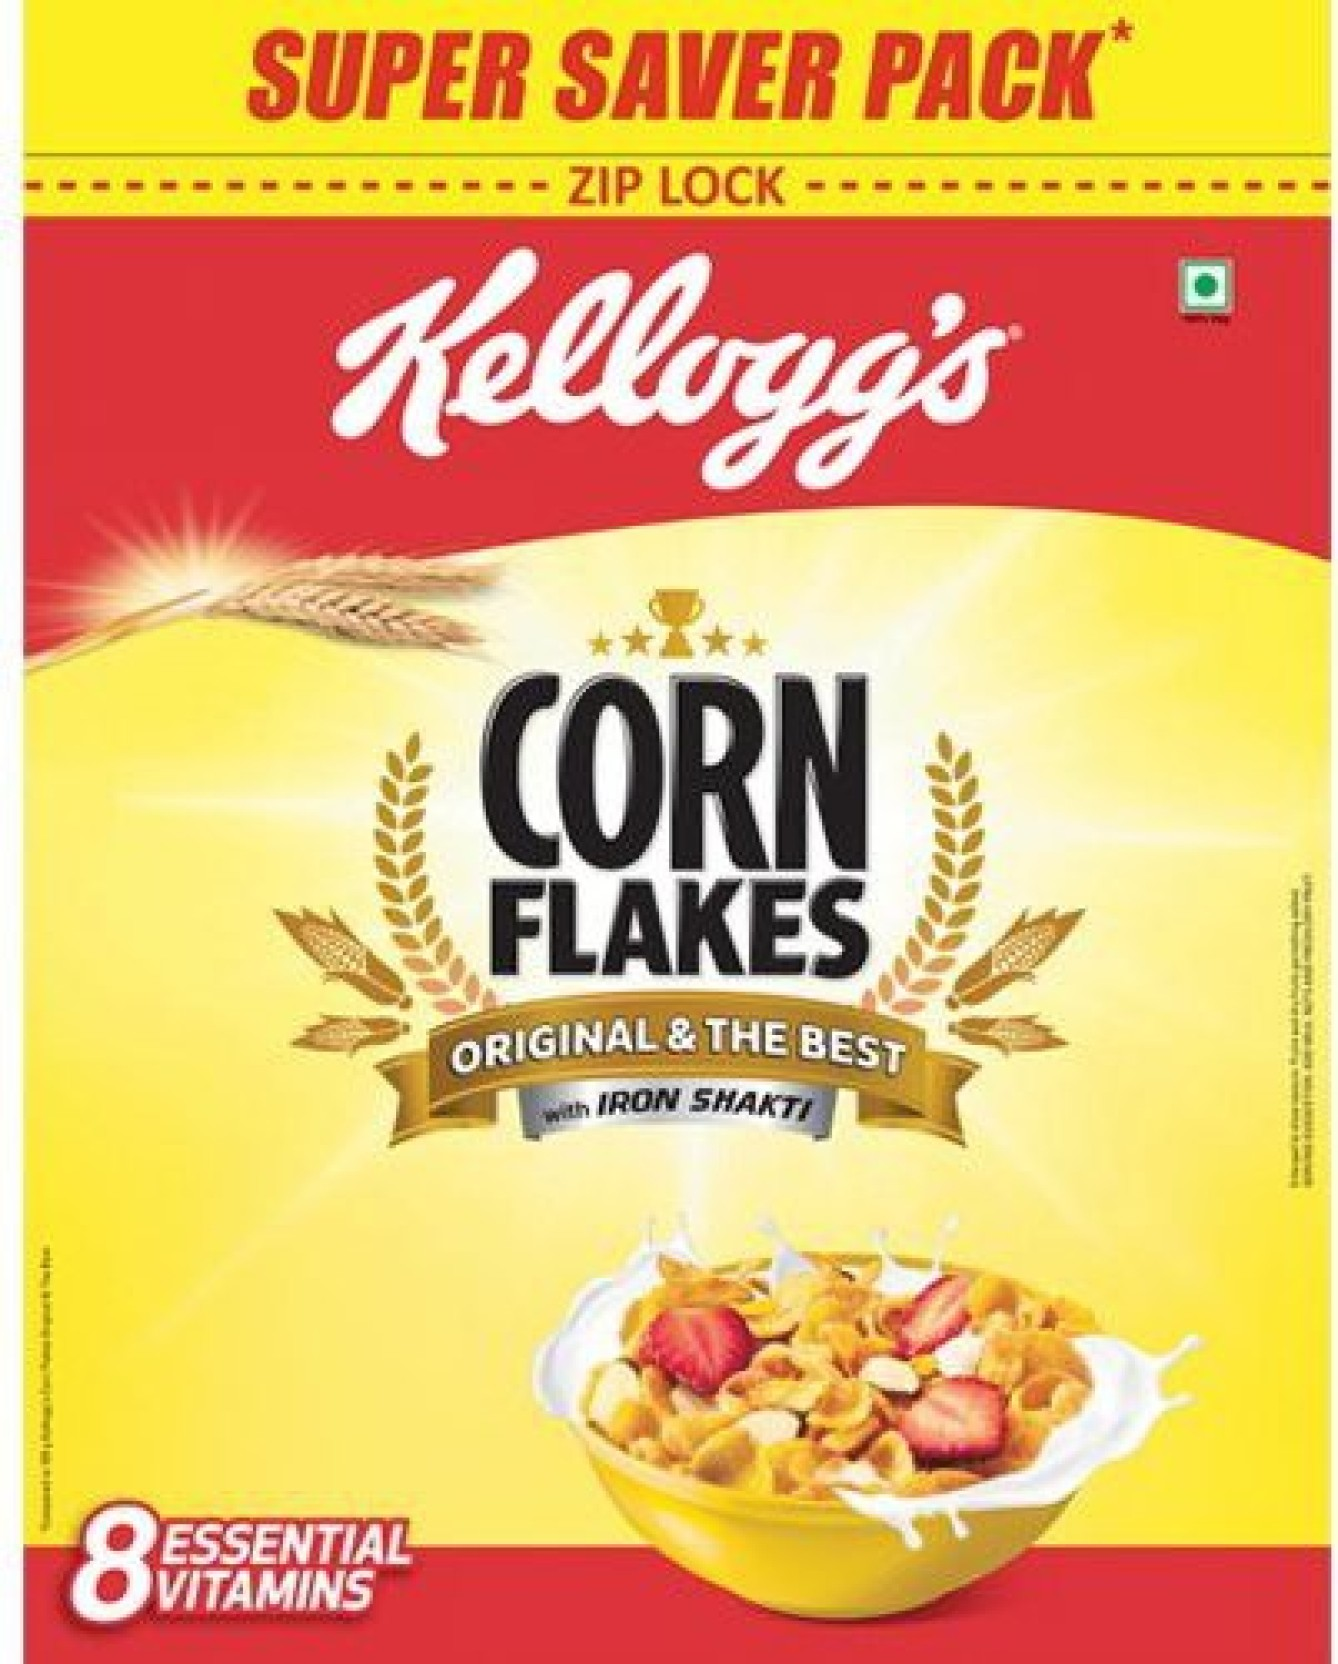 Kelloggs Corn Flakes Original And The Best Price In India Buy Deal Offer Zone Add To Cart